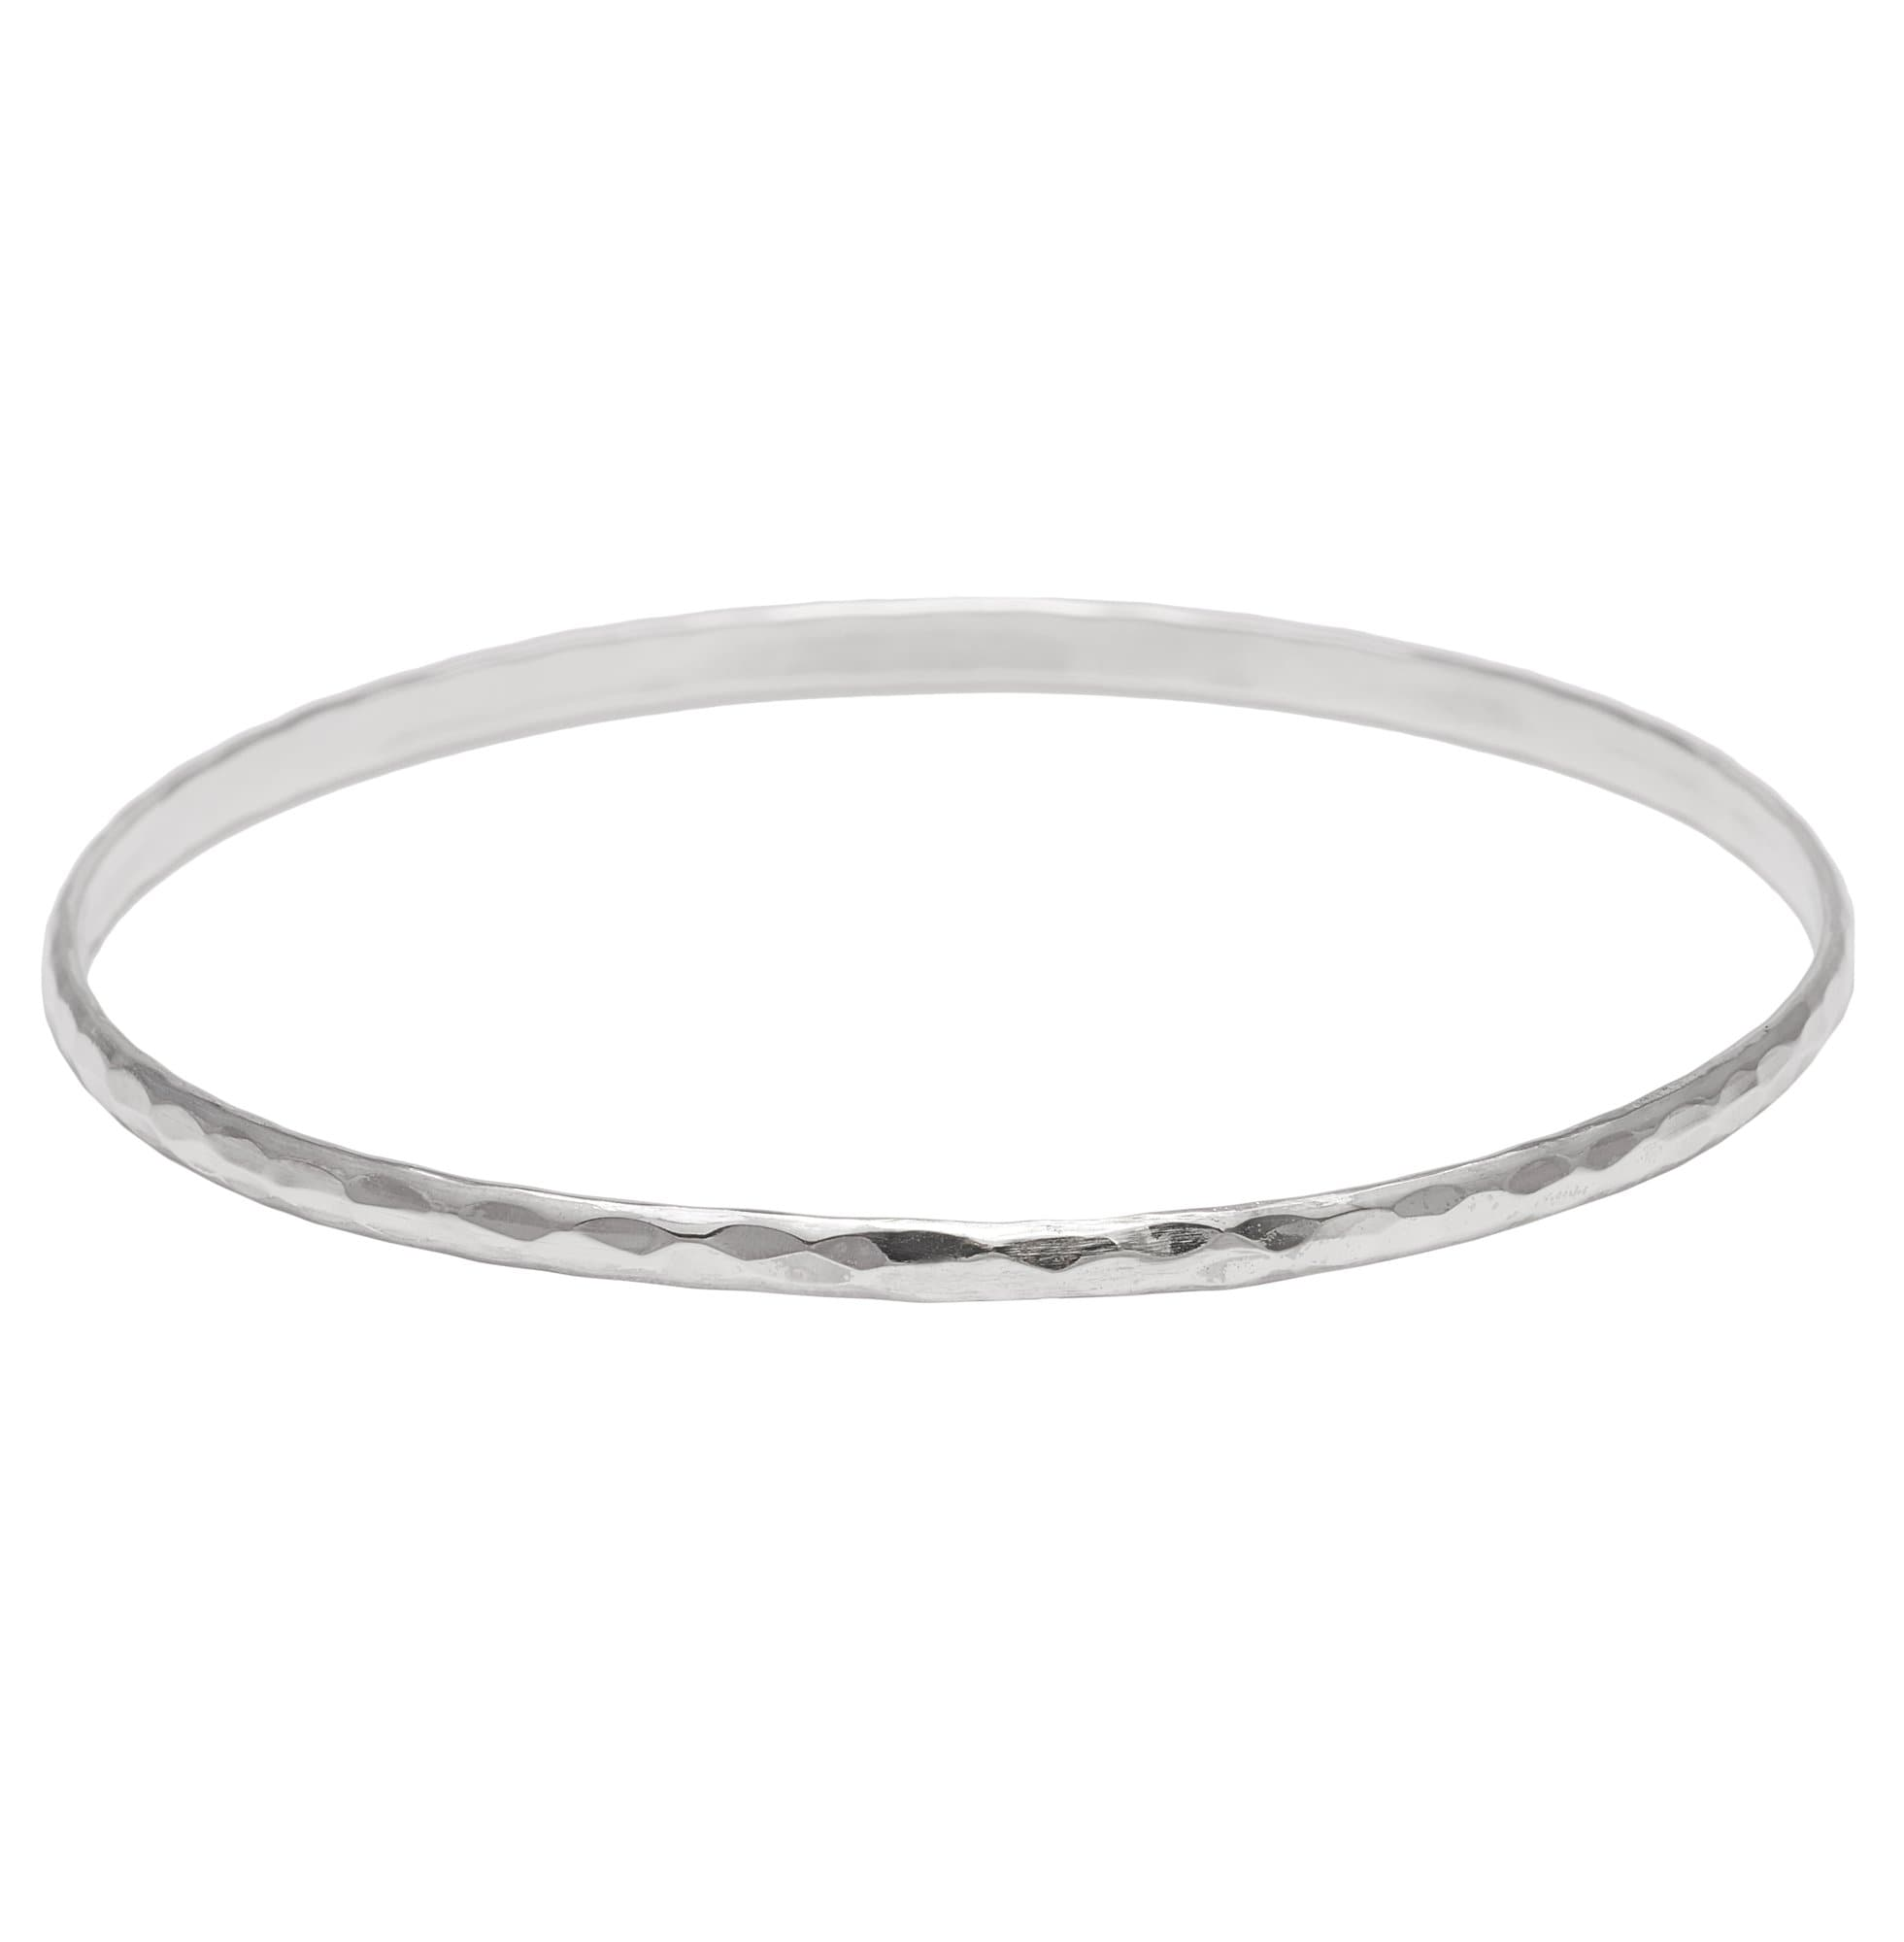 sterling bracelets products silver bangles plain bracelet musesilver fakier bangle jewelers